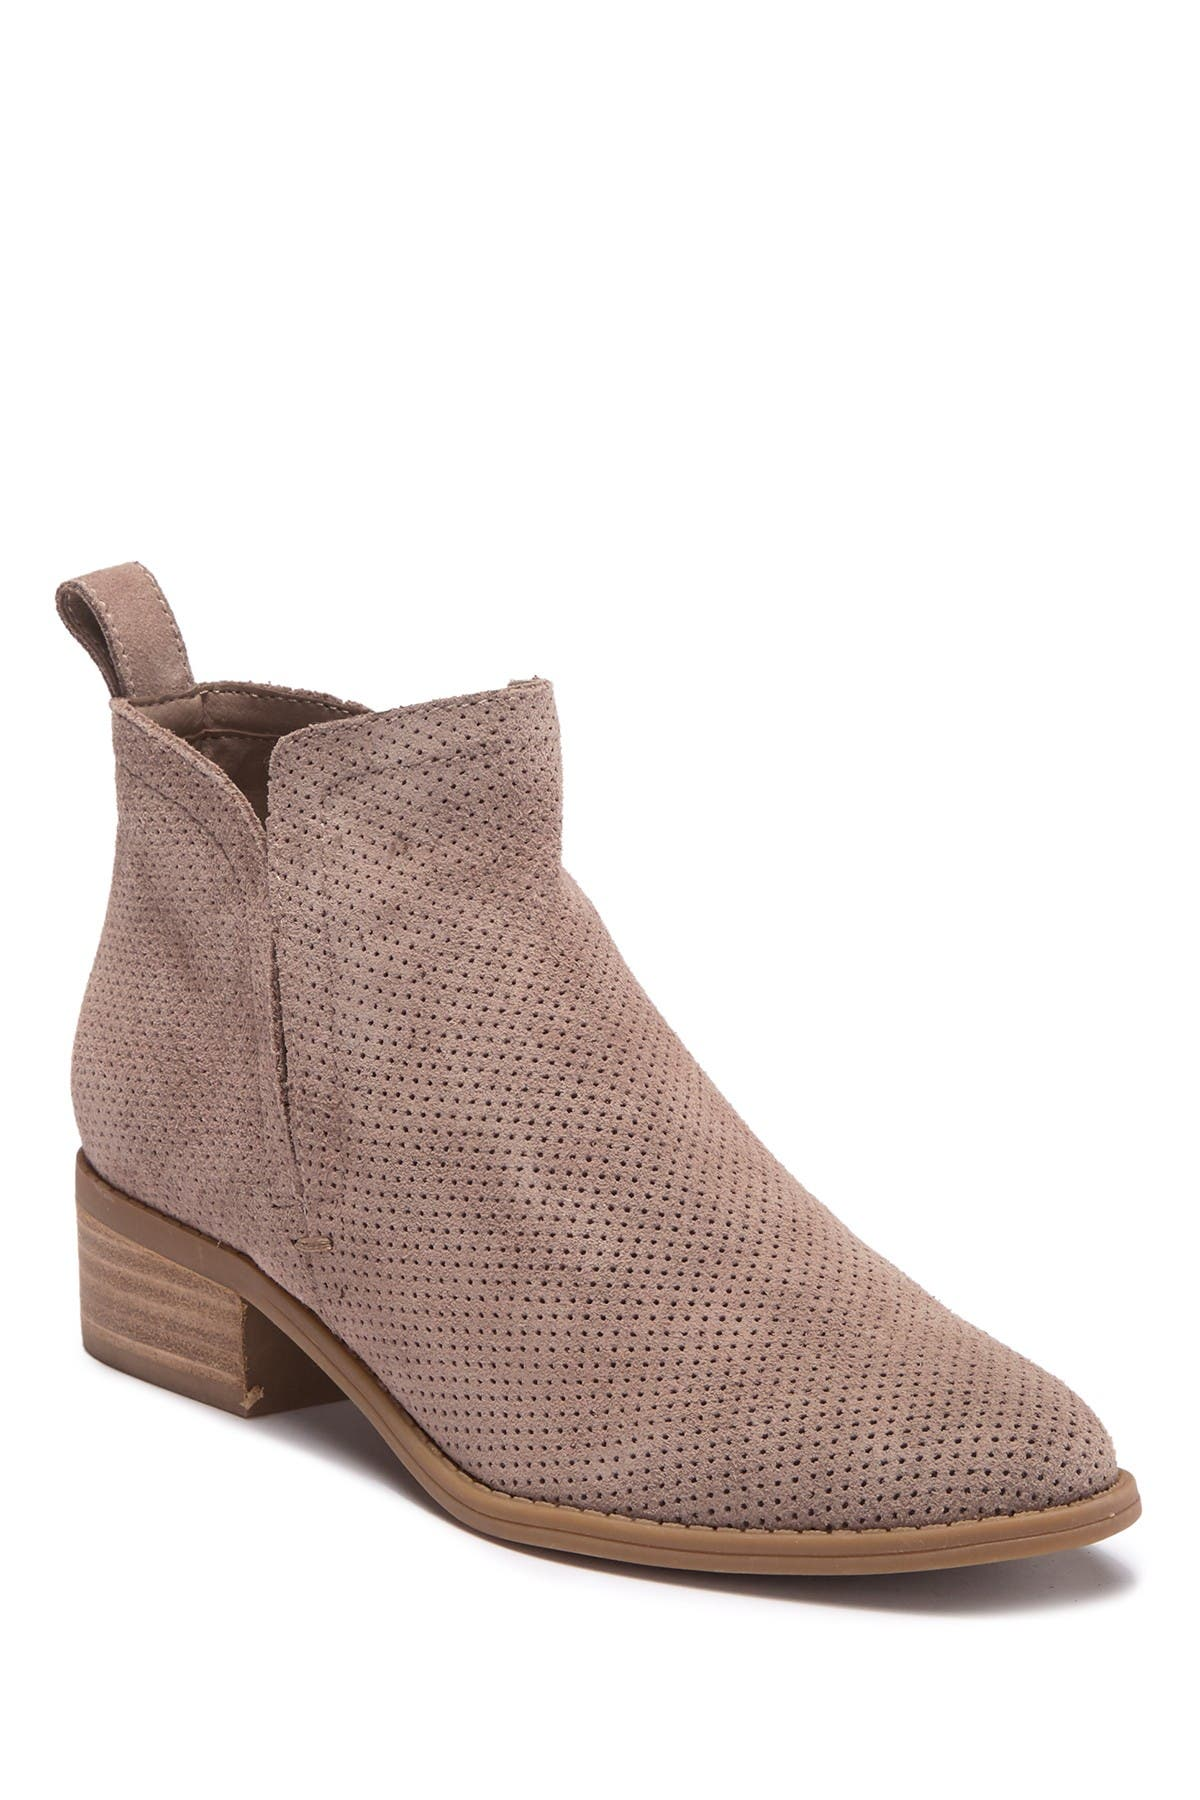 Image of Dolce Vita Tivon Perforated Bootie